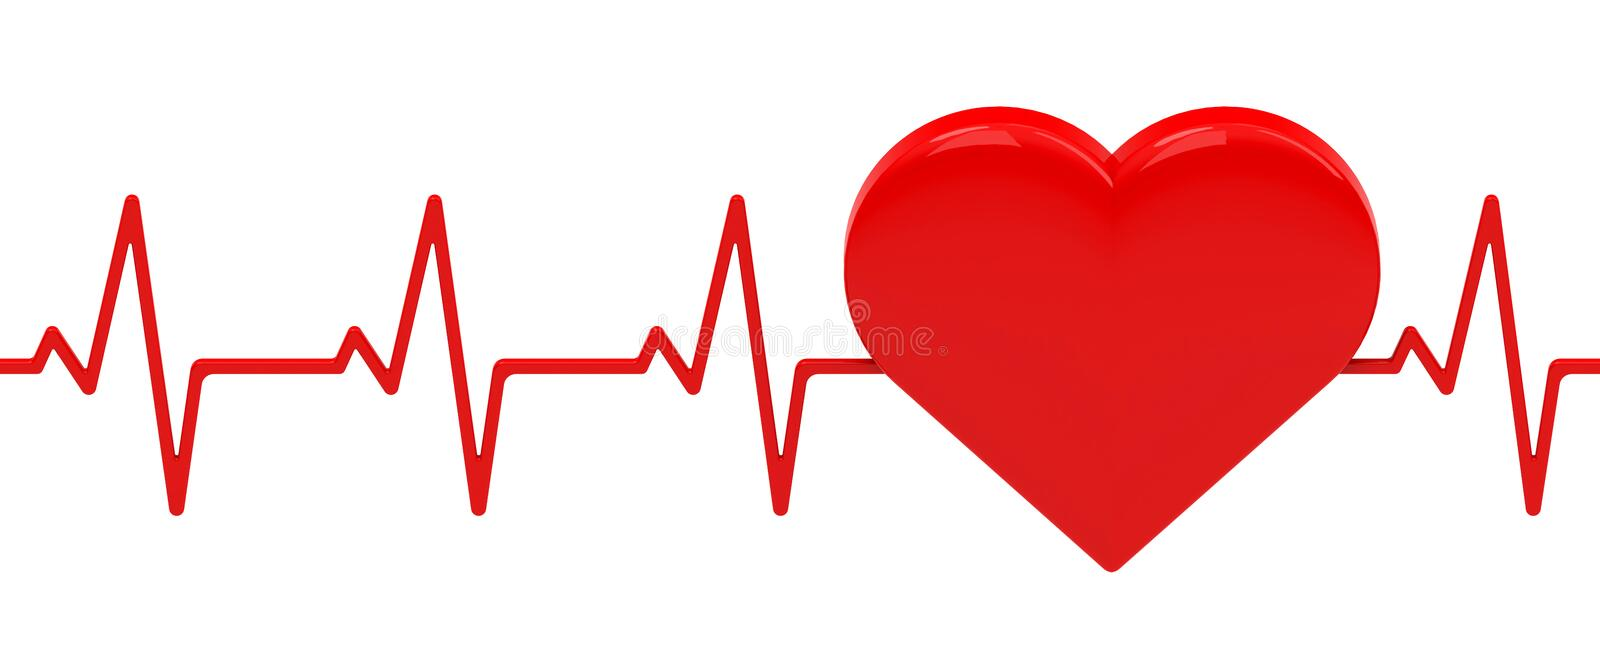 the heartbeat stock illustration illustration of heart 48779552 rh dreamstime com heartbeat clipart black and white heartbeat clipart vector